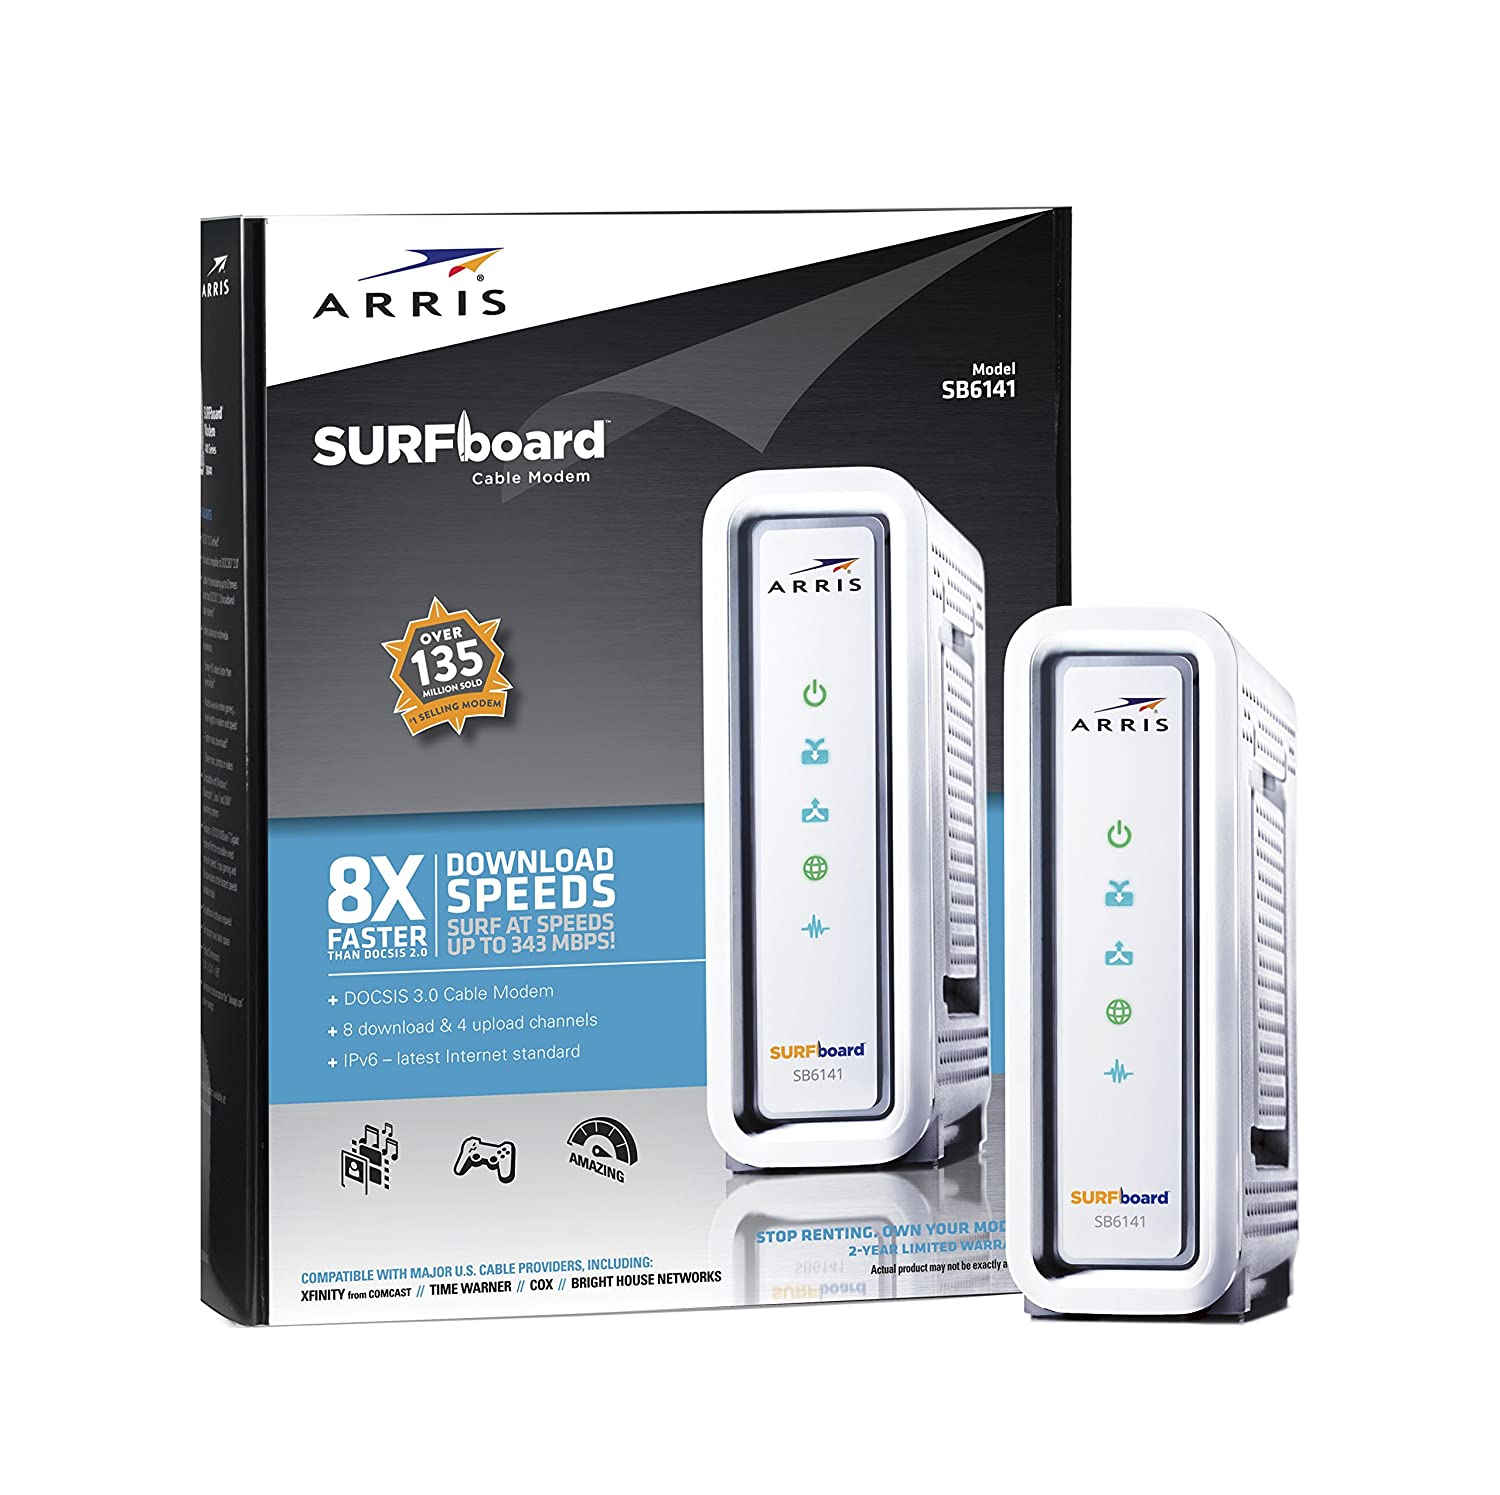 ARRIS/Motorola SurfBoard SB6141 DOCSIS 3.0 Cable Modem - Retail Packaging - White